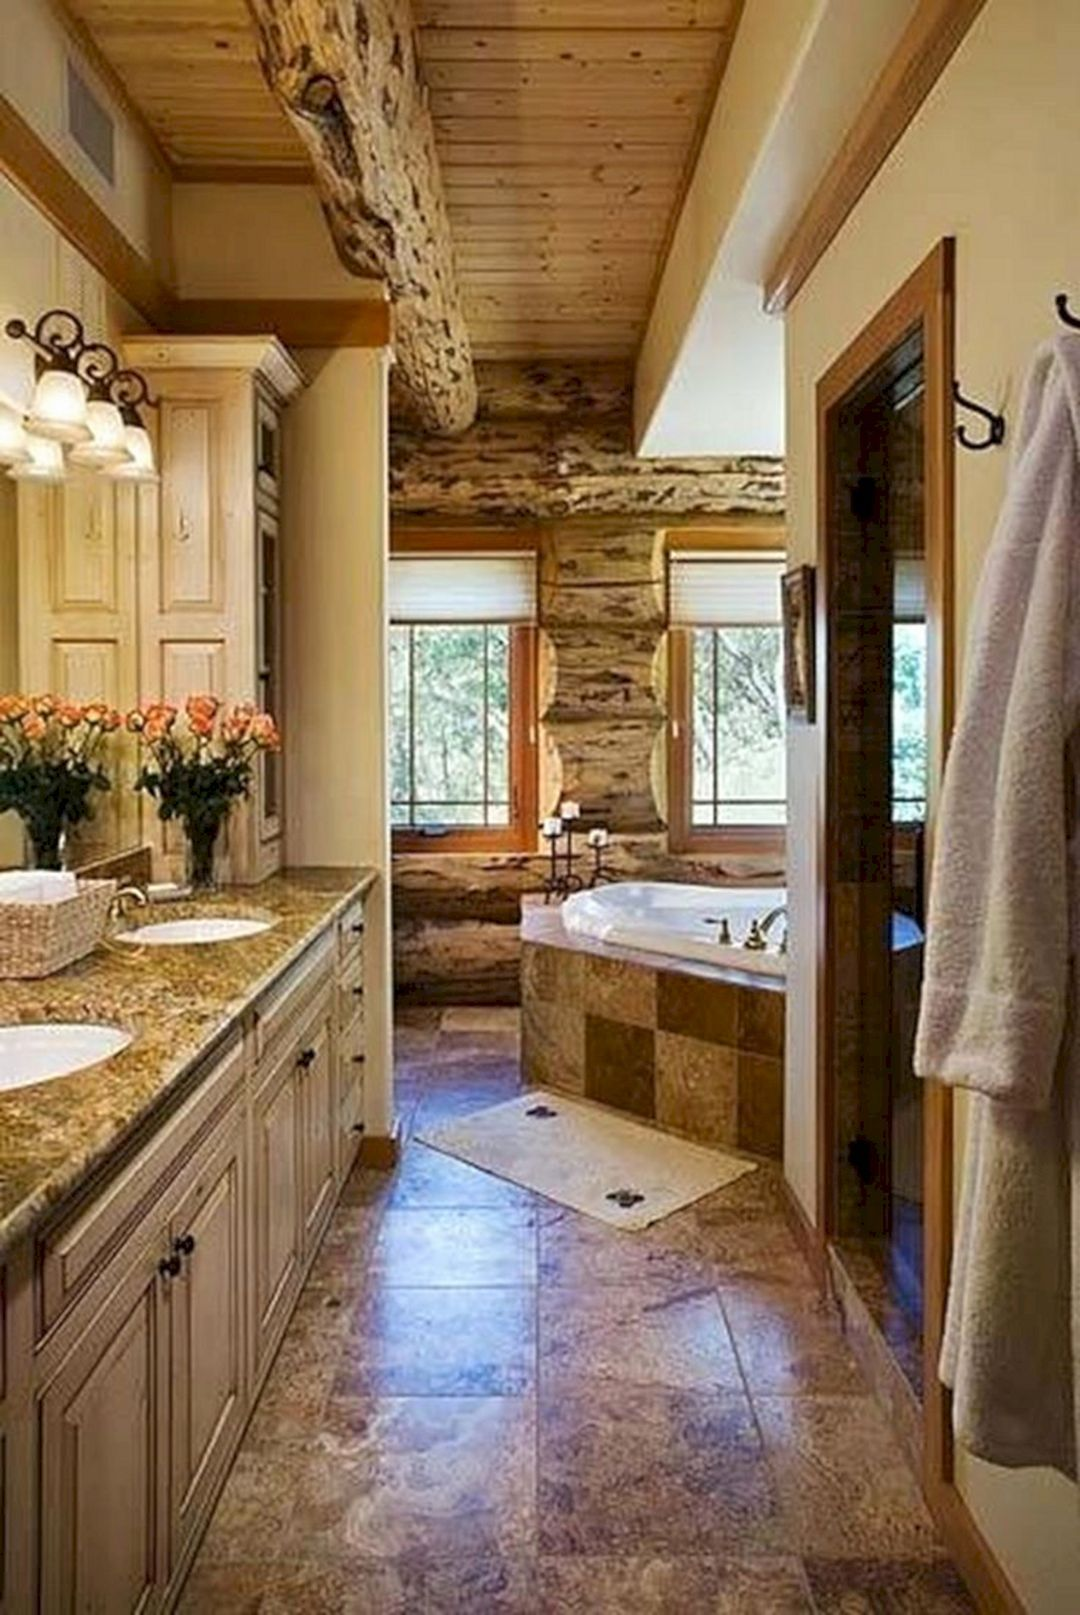 30+ Beautiful Rustic Bathroom Design Ideas You Should Have It #rusticbathroomdesigns